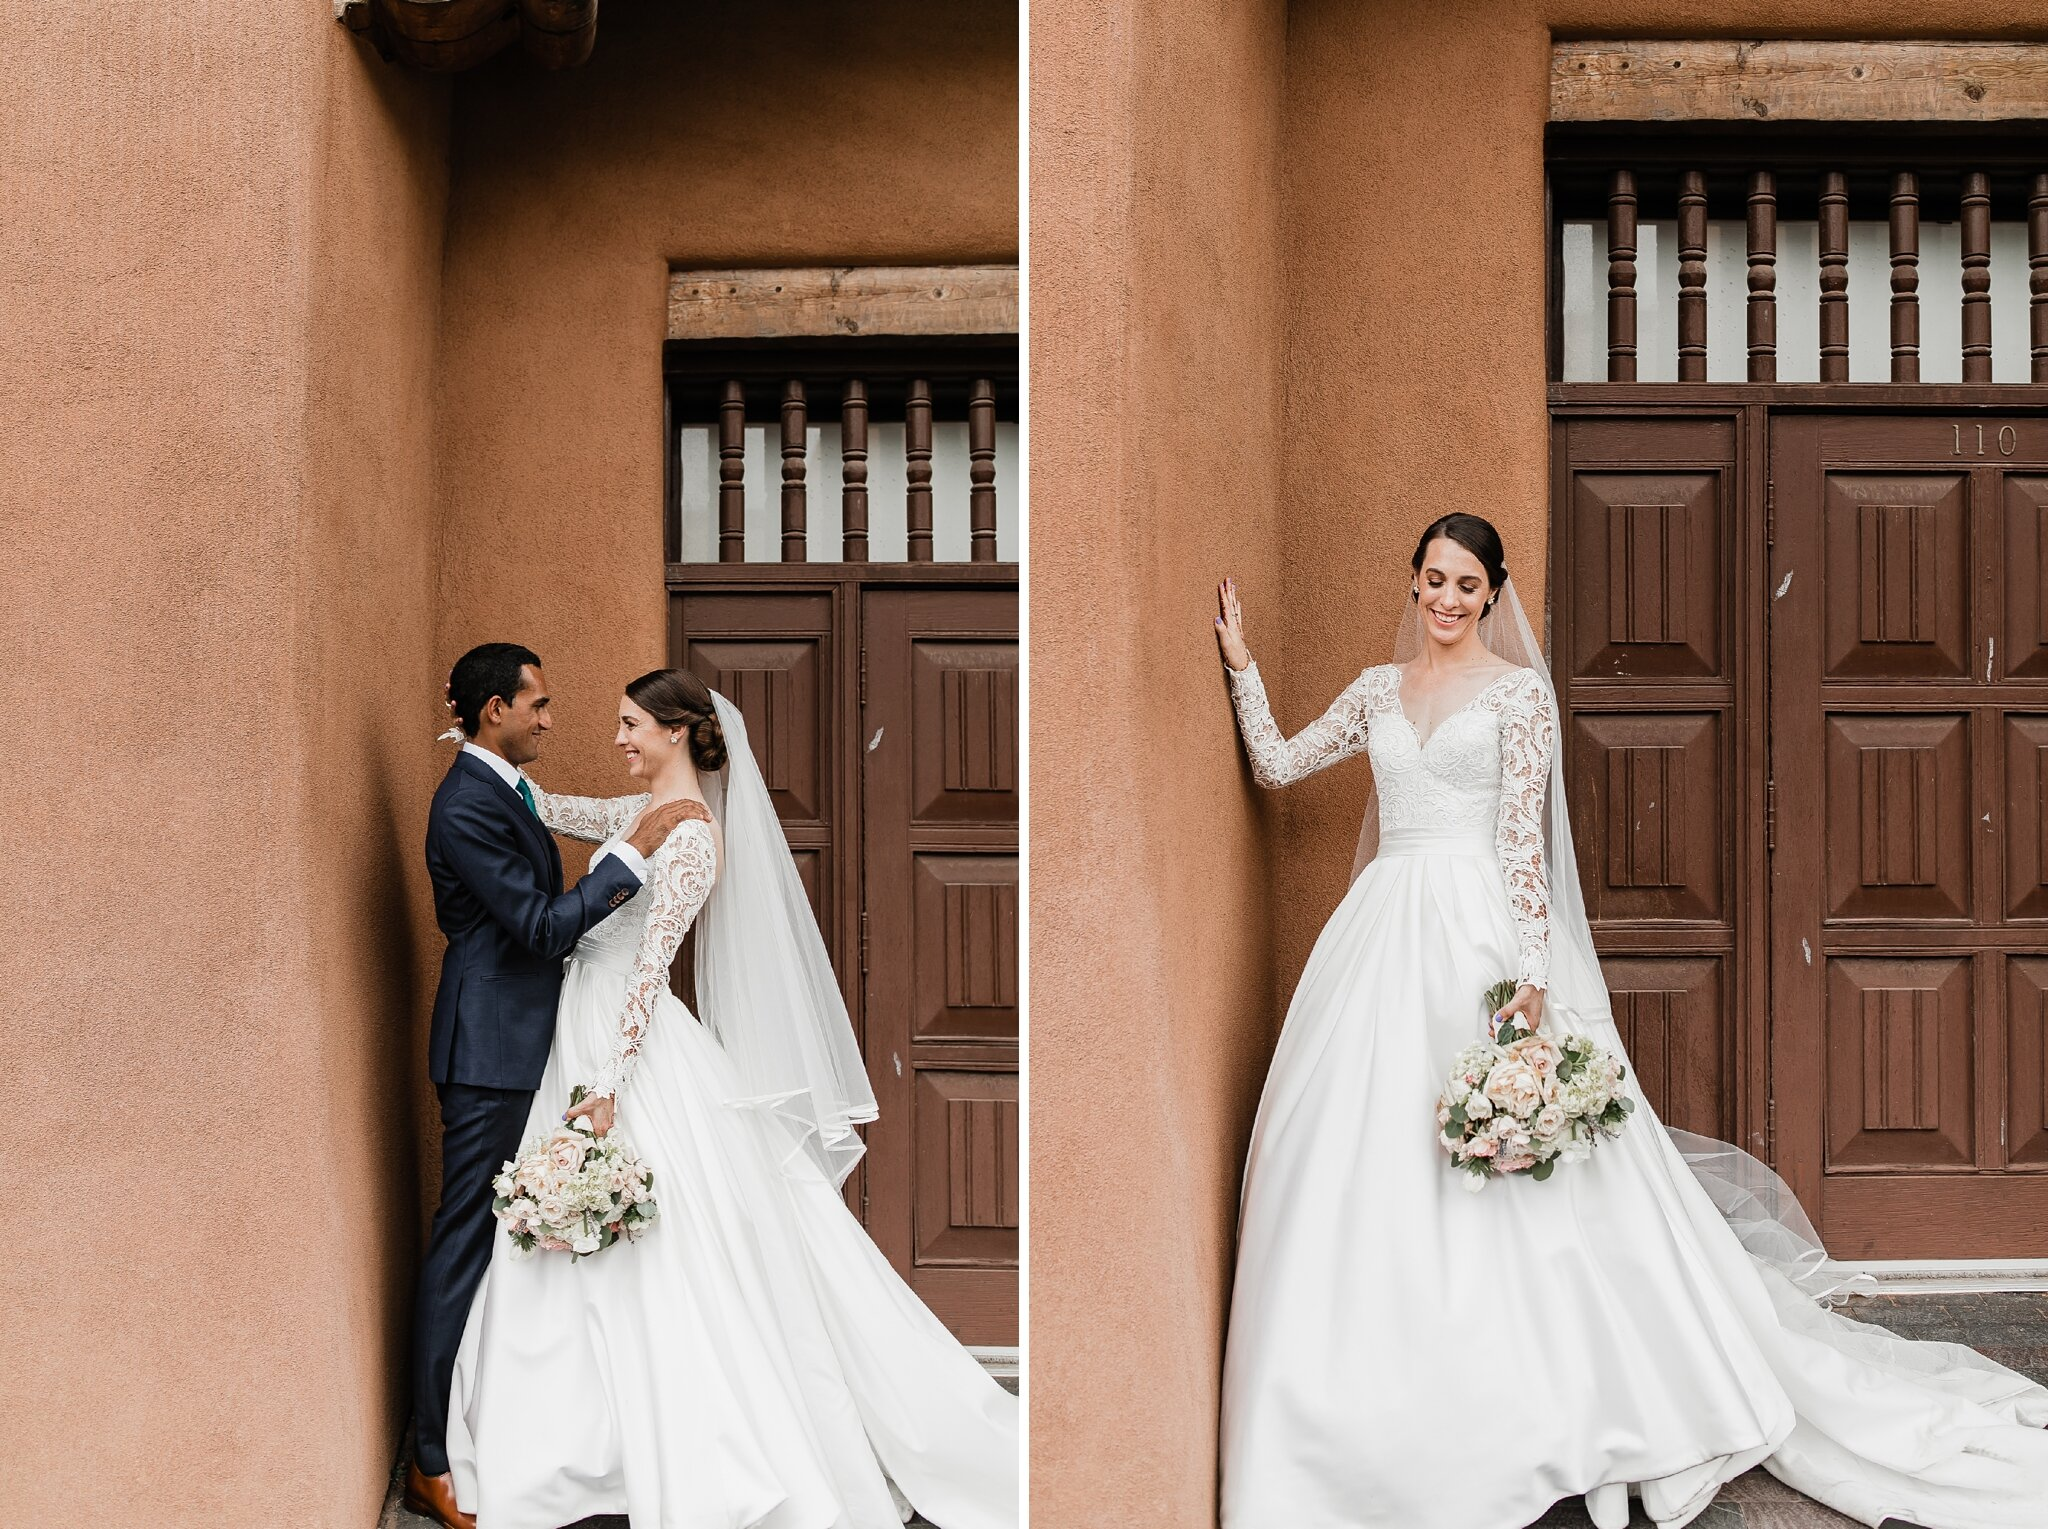 Alicia+lucia+photography+-+albuquerque+wedding+photographer+-+santa+fe+wedding+photography+-+new+mexico+wedding+photographer+-+new+mexico+wedding+-+hindu+wedding+-+catholic+wedding+-+multicultural+wedding+-+santa+fe+wedding_0082.jpg